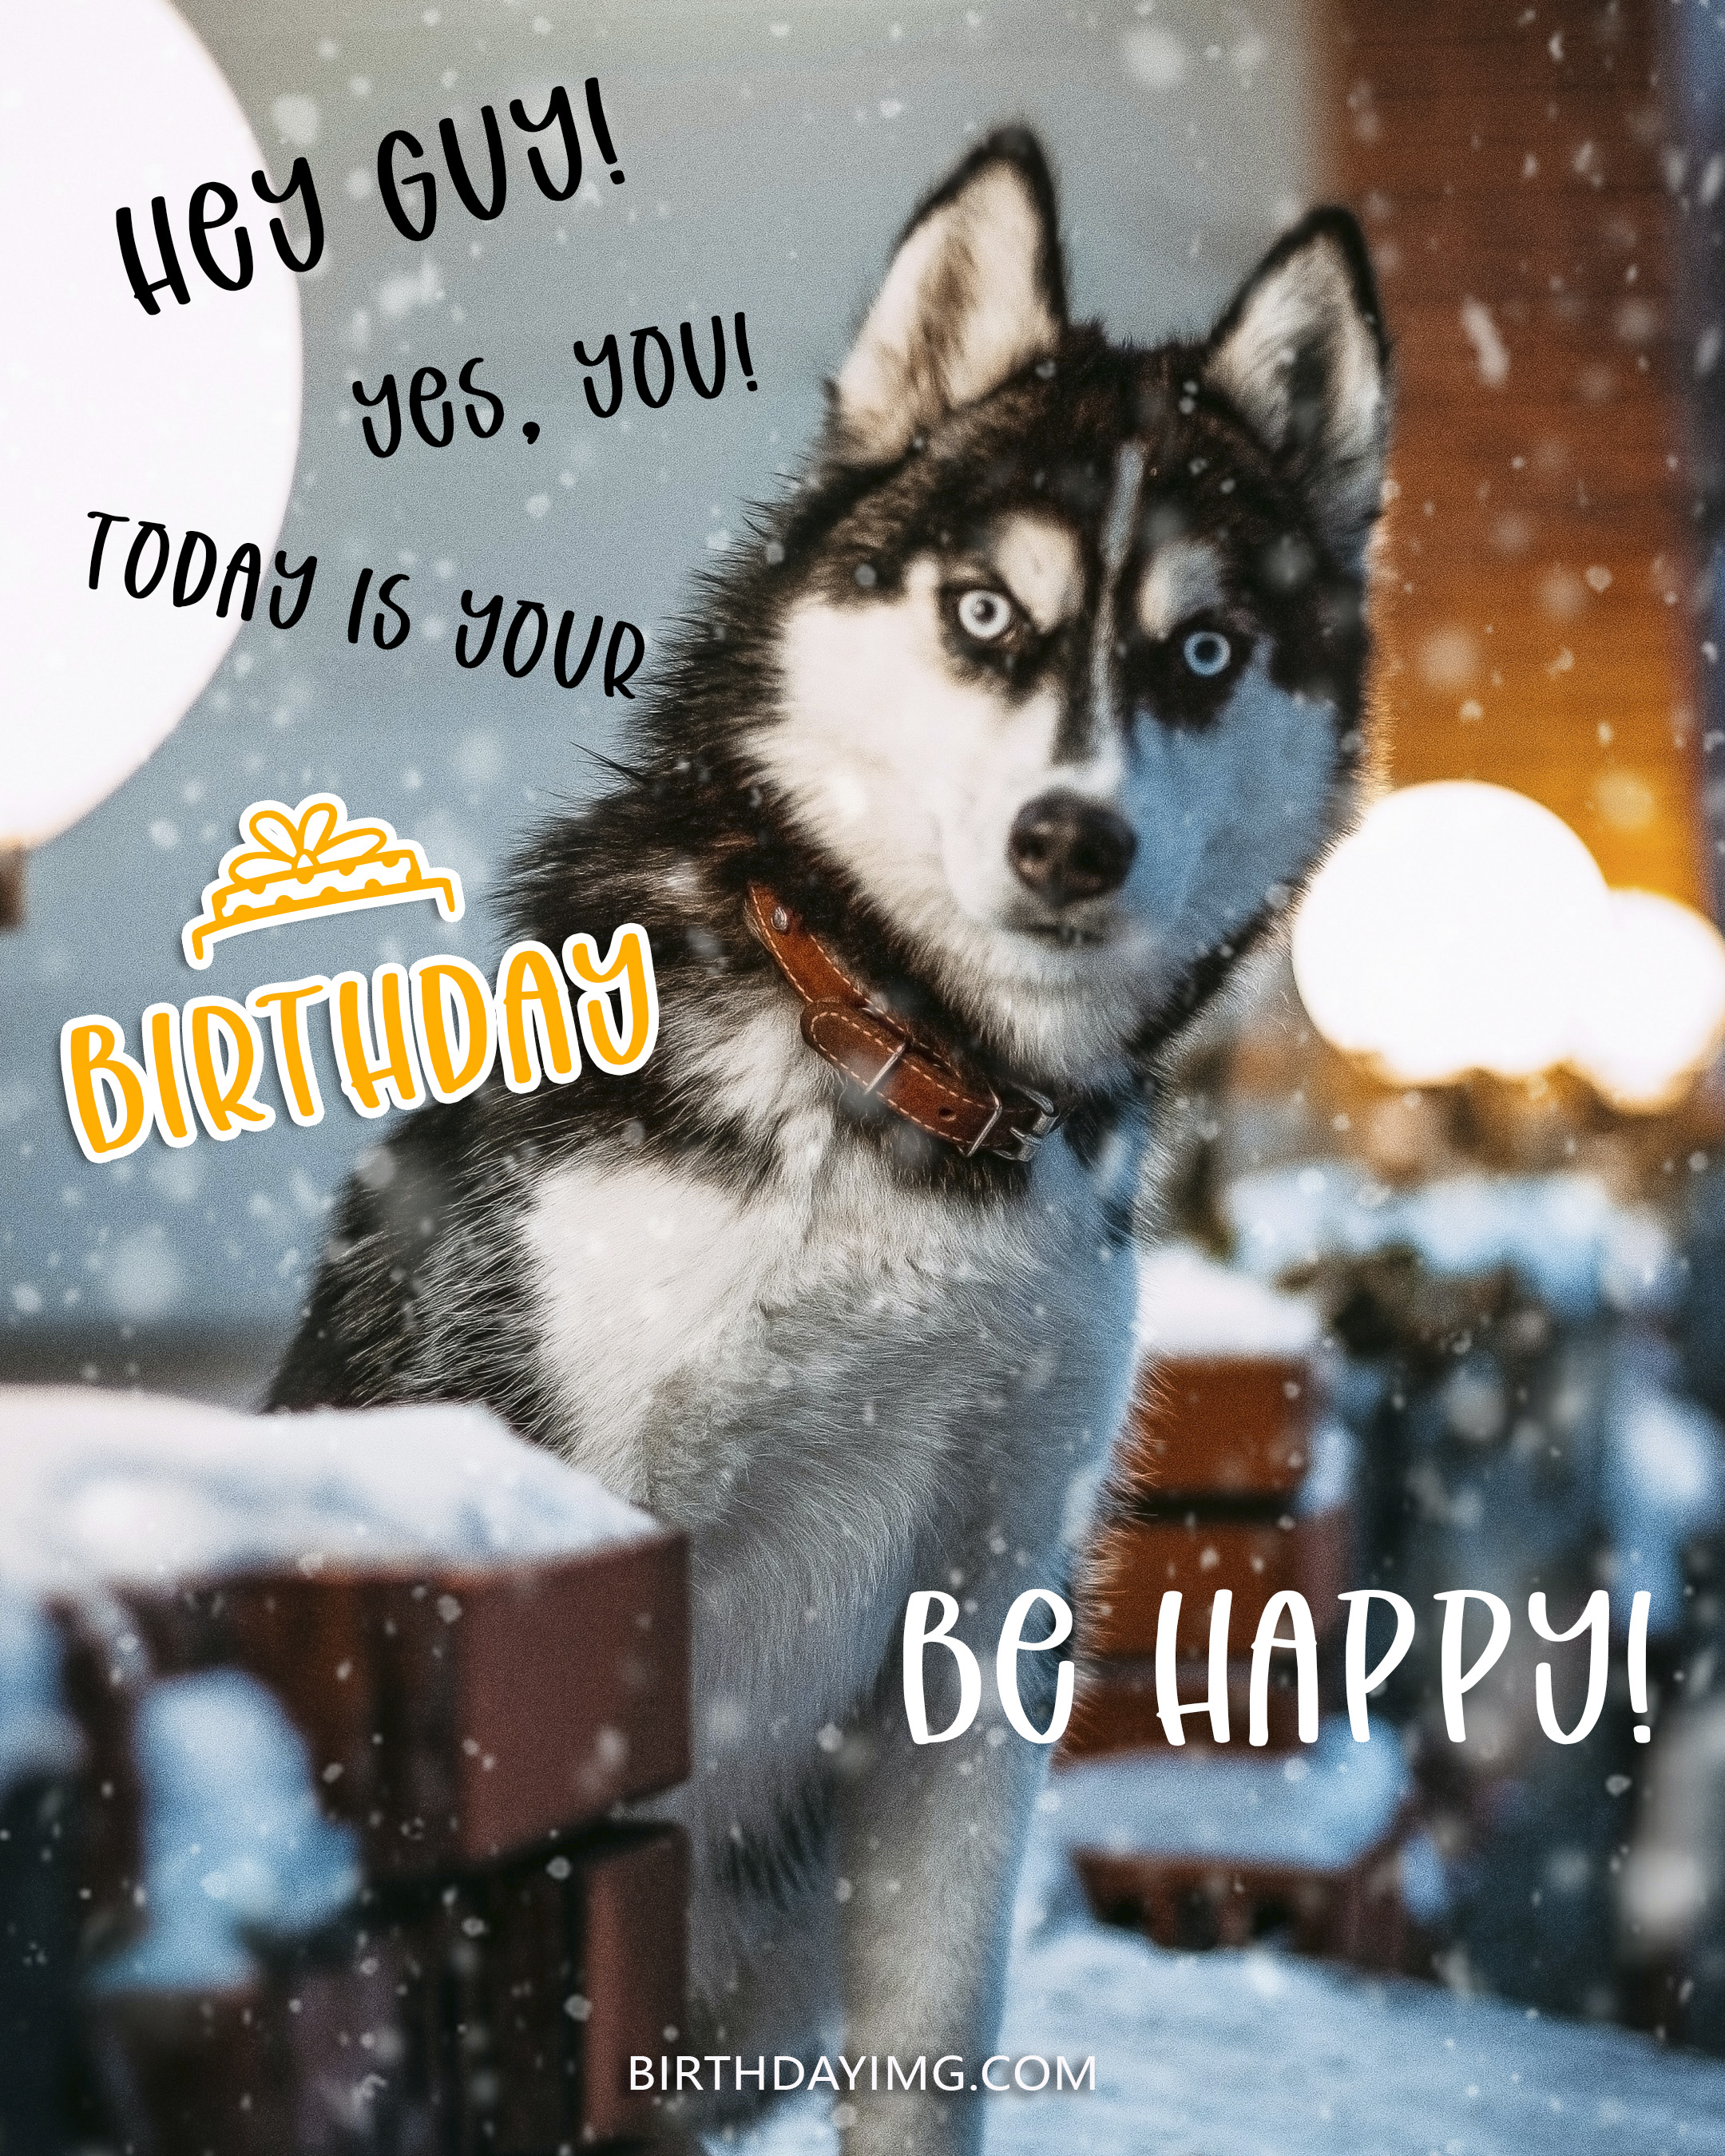 Free Happy Birthday Image For Guy With Funny Dog and Snow - birthdayimg.com